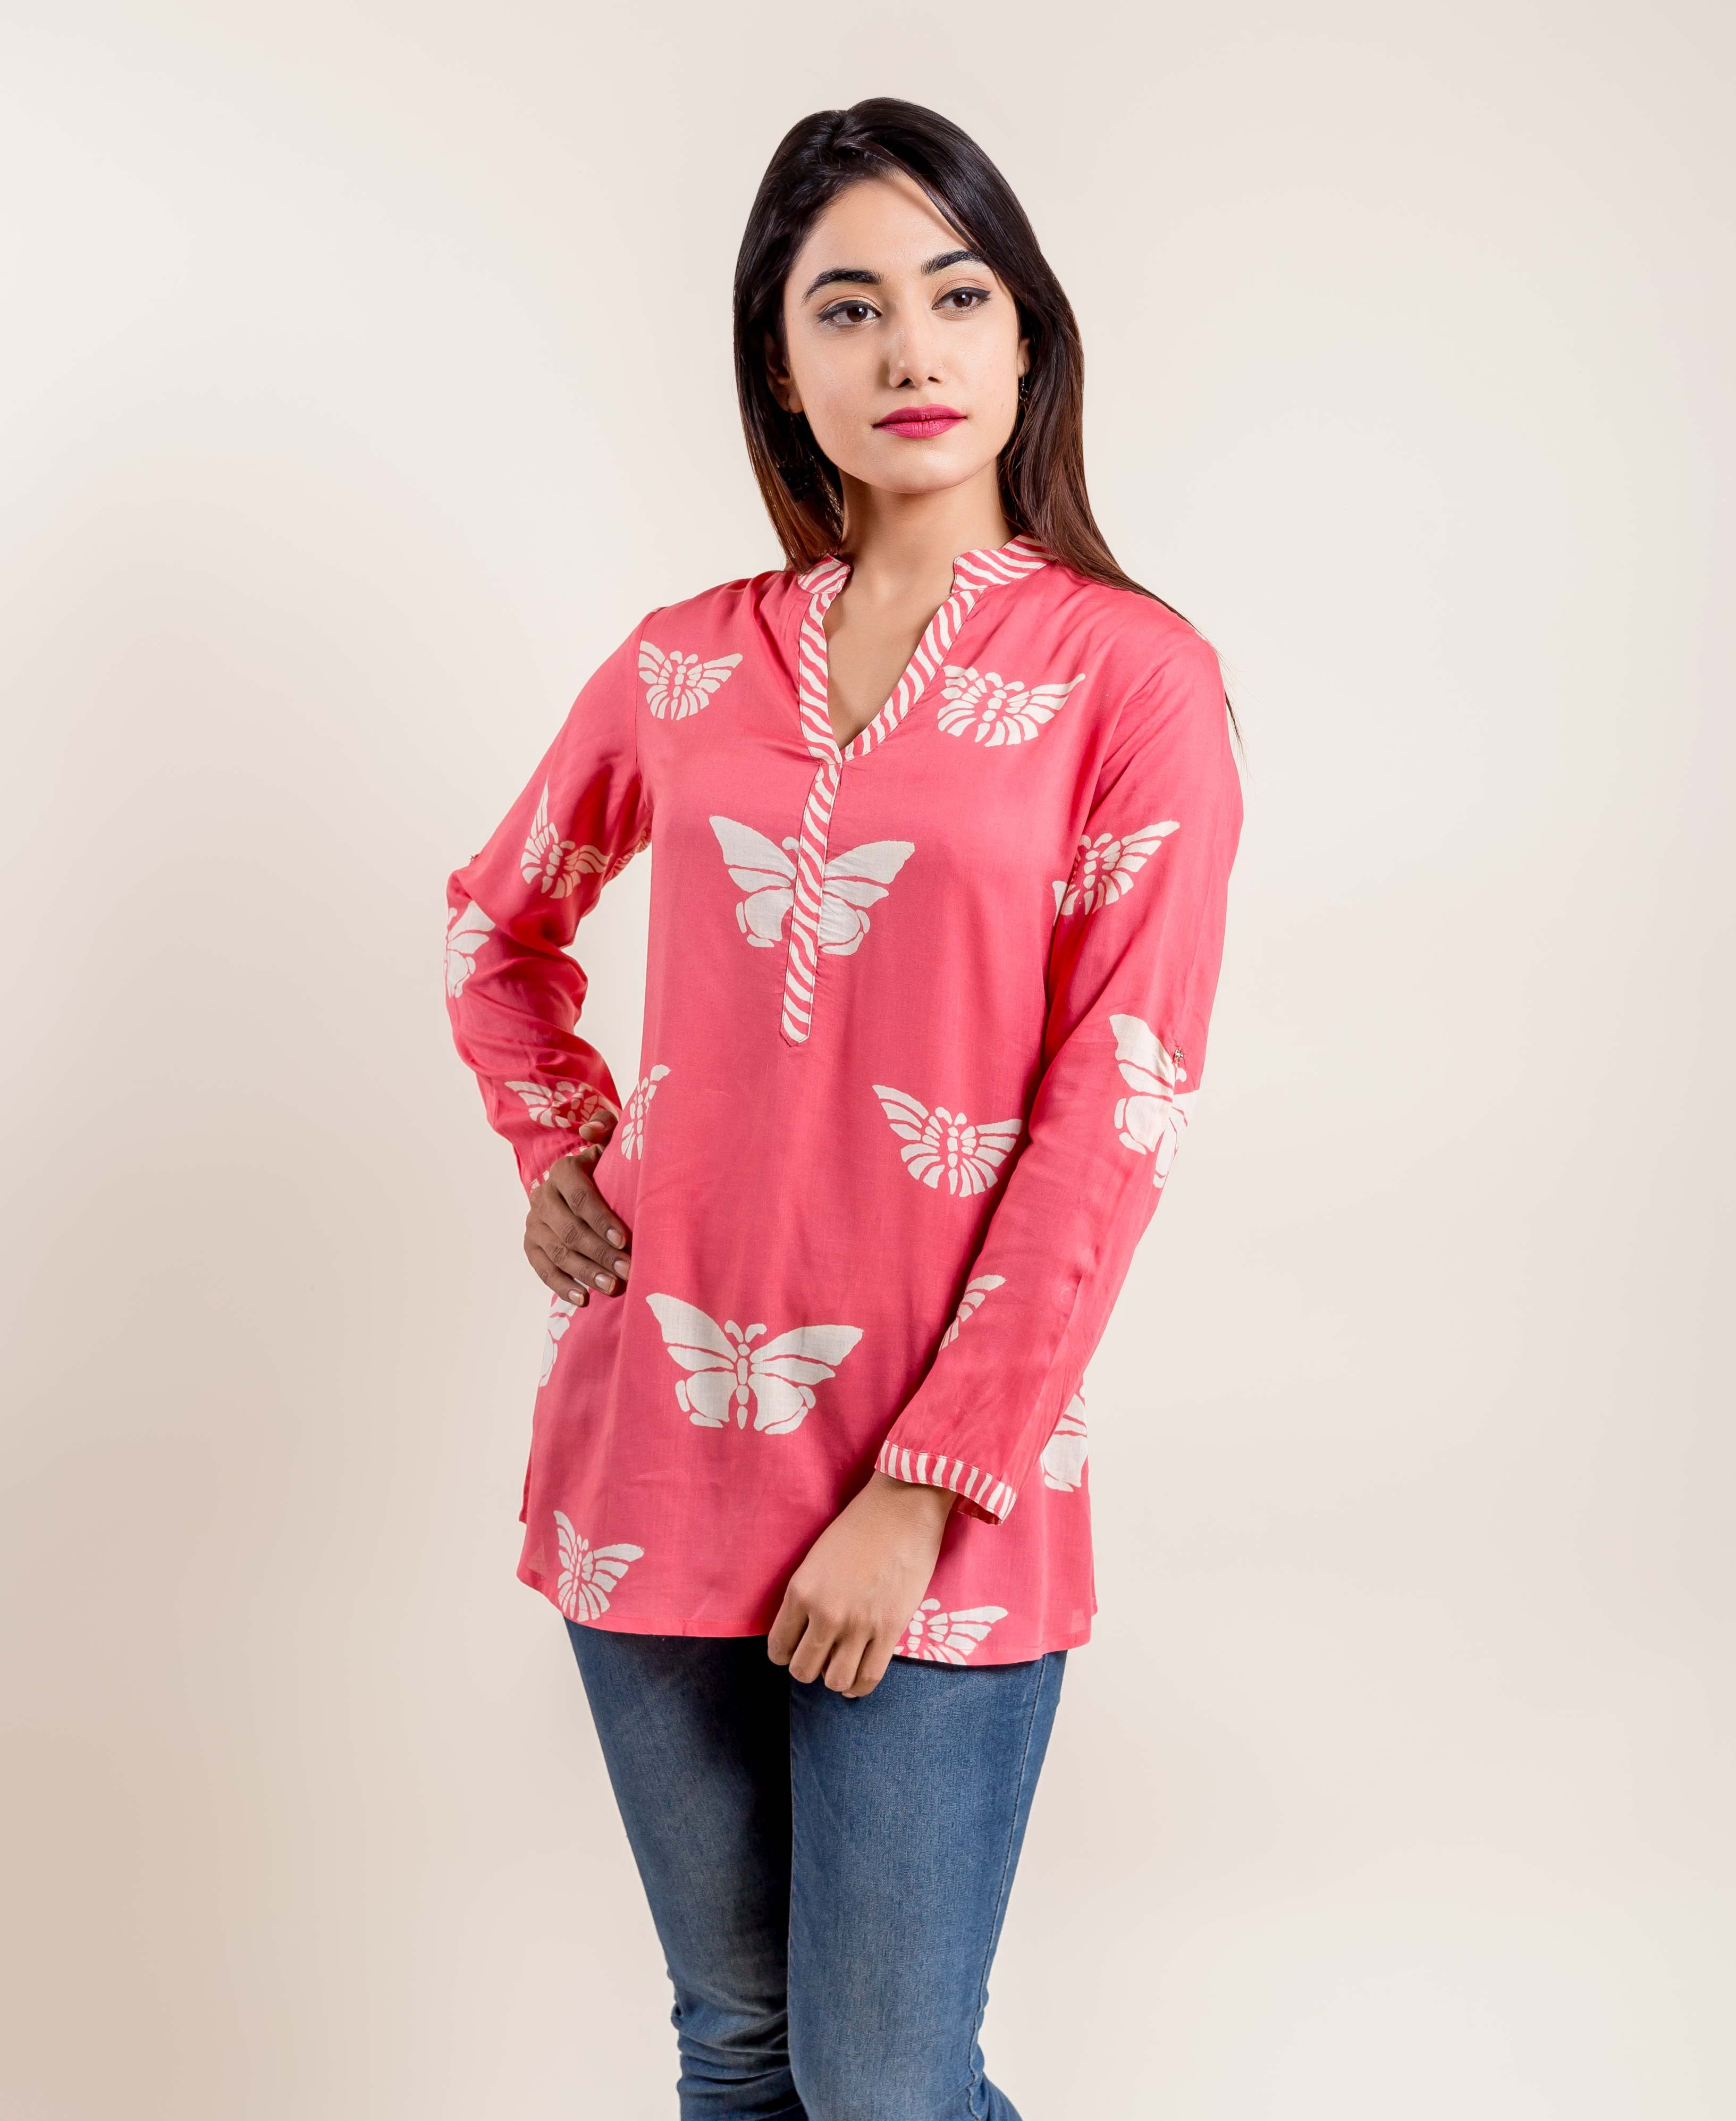 Butterfly Hand Block Printed White Short Ethnic Top